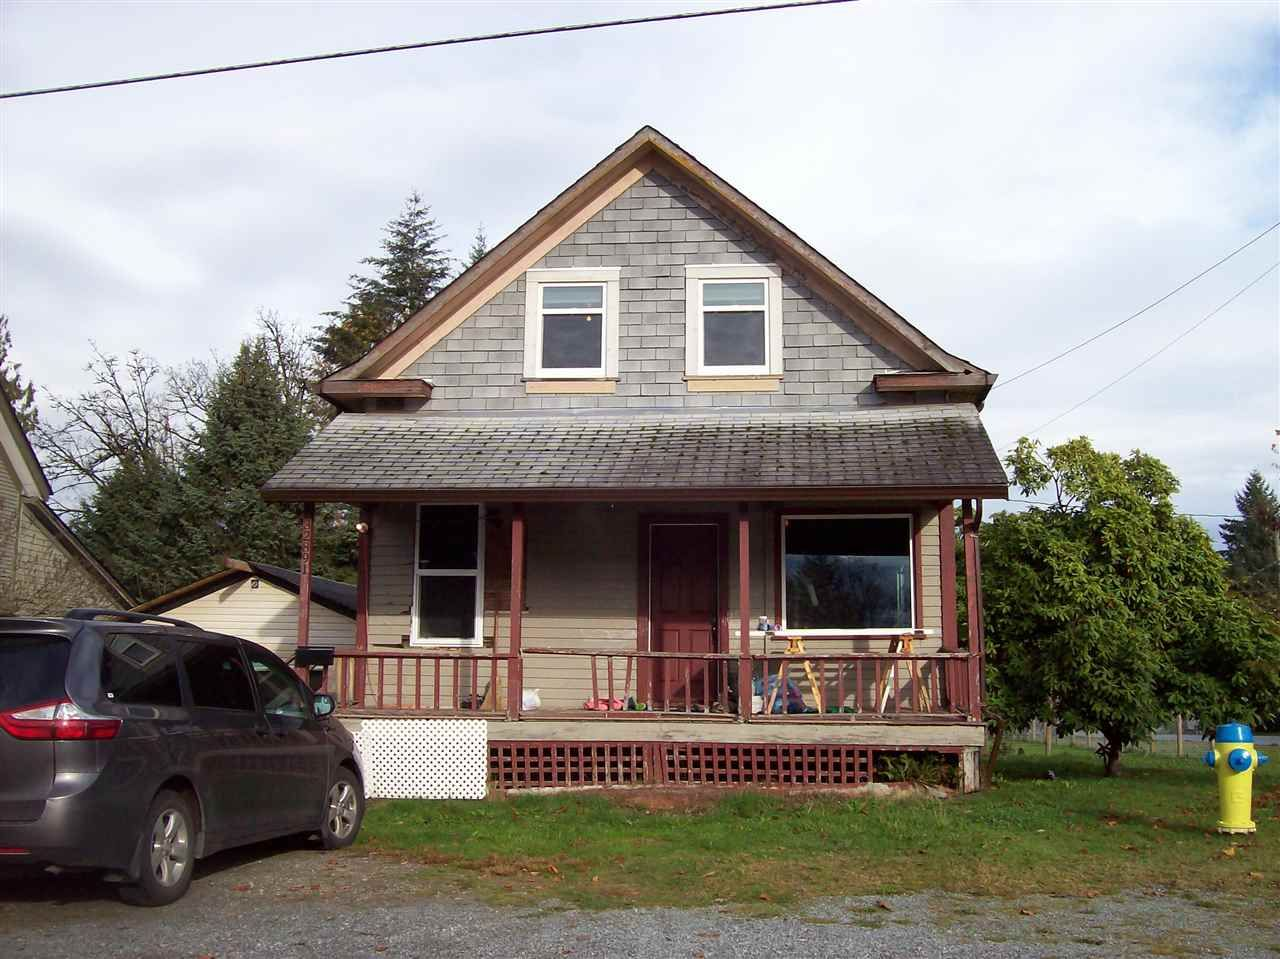 Main Photo: 32891 5TH AVENUE in Mission: Mission BC House for sale : MLS®# R2121909